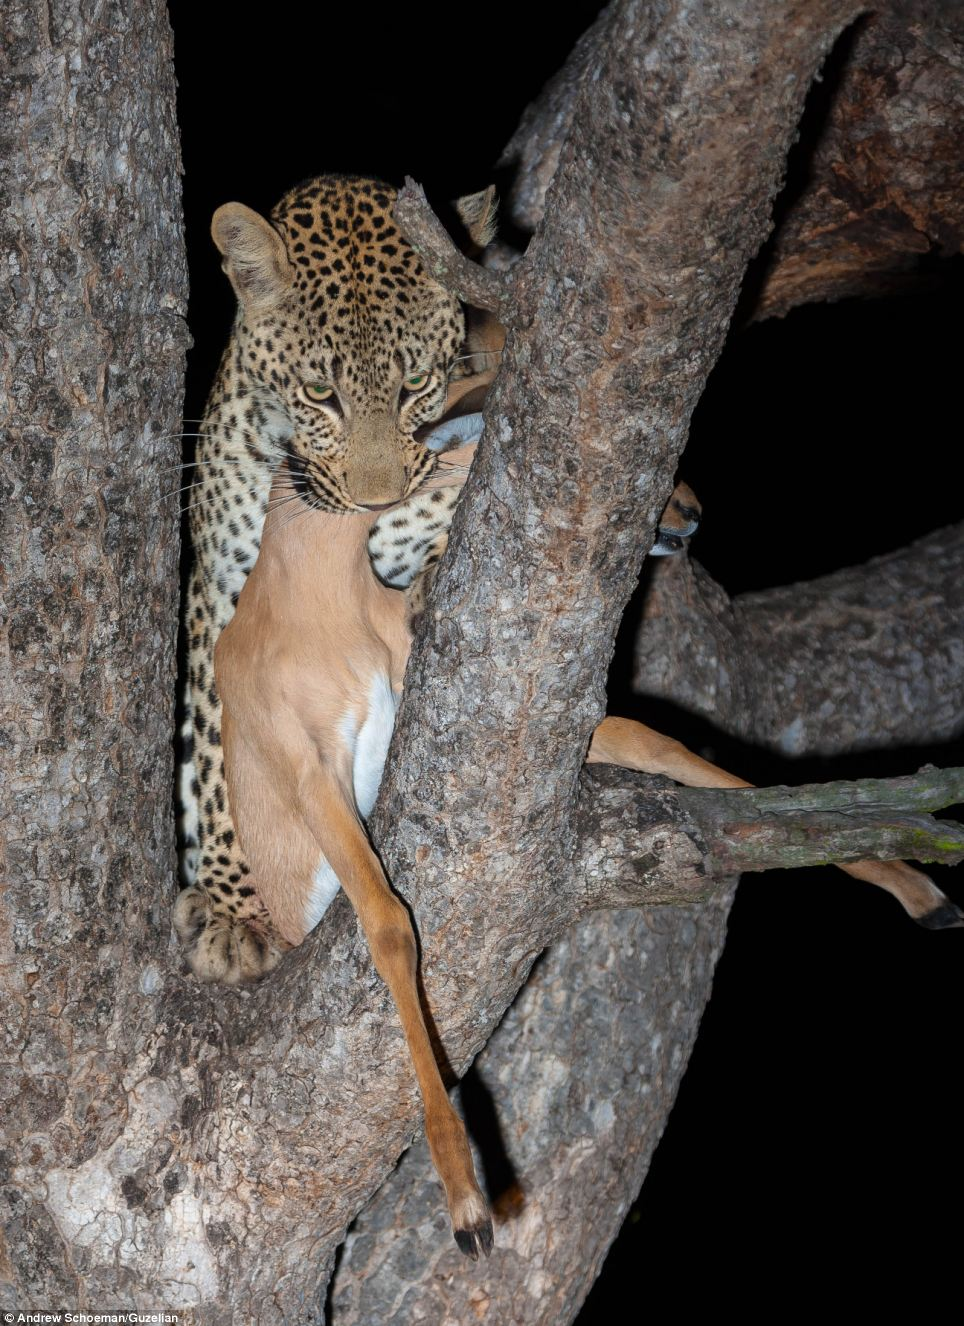 Supper: The leopard now has his evening meal in place, however, he is not the only one around